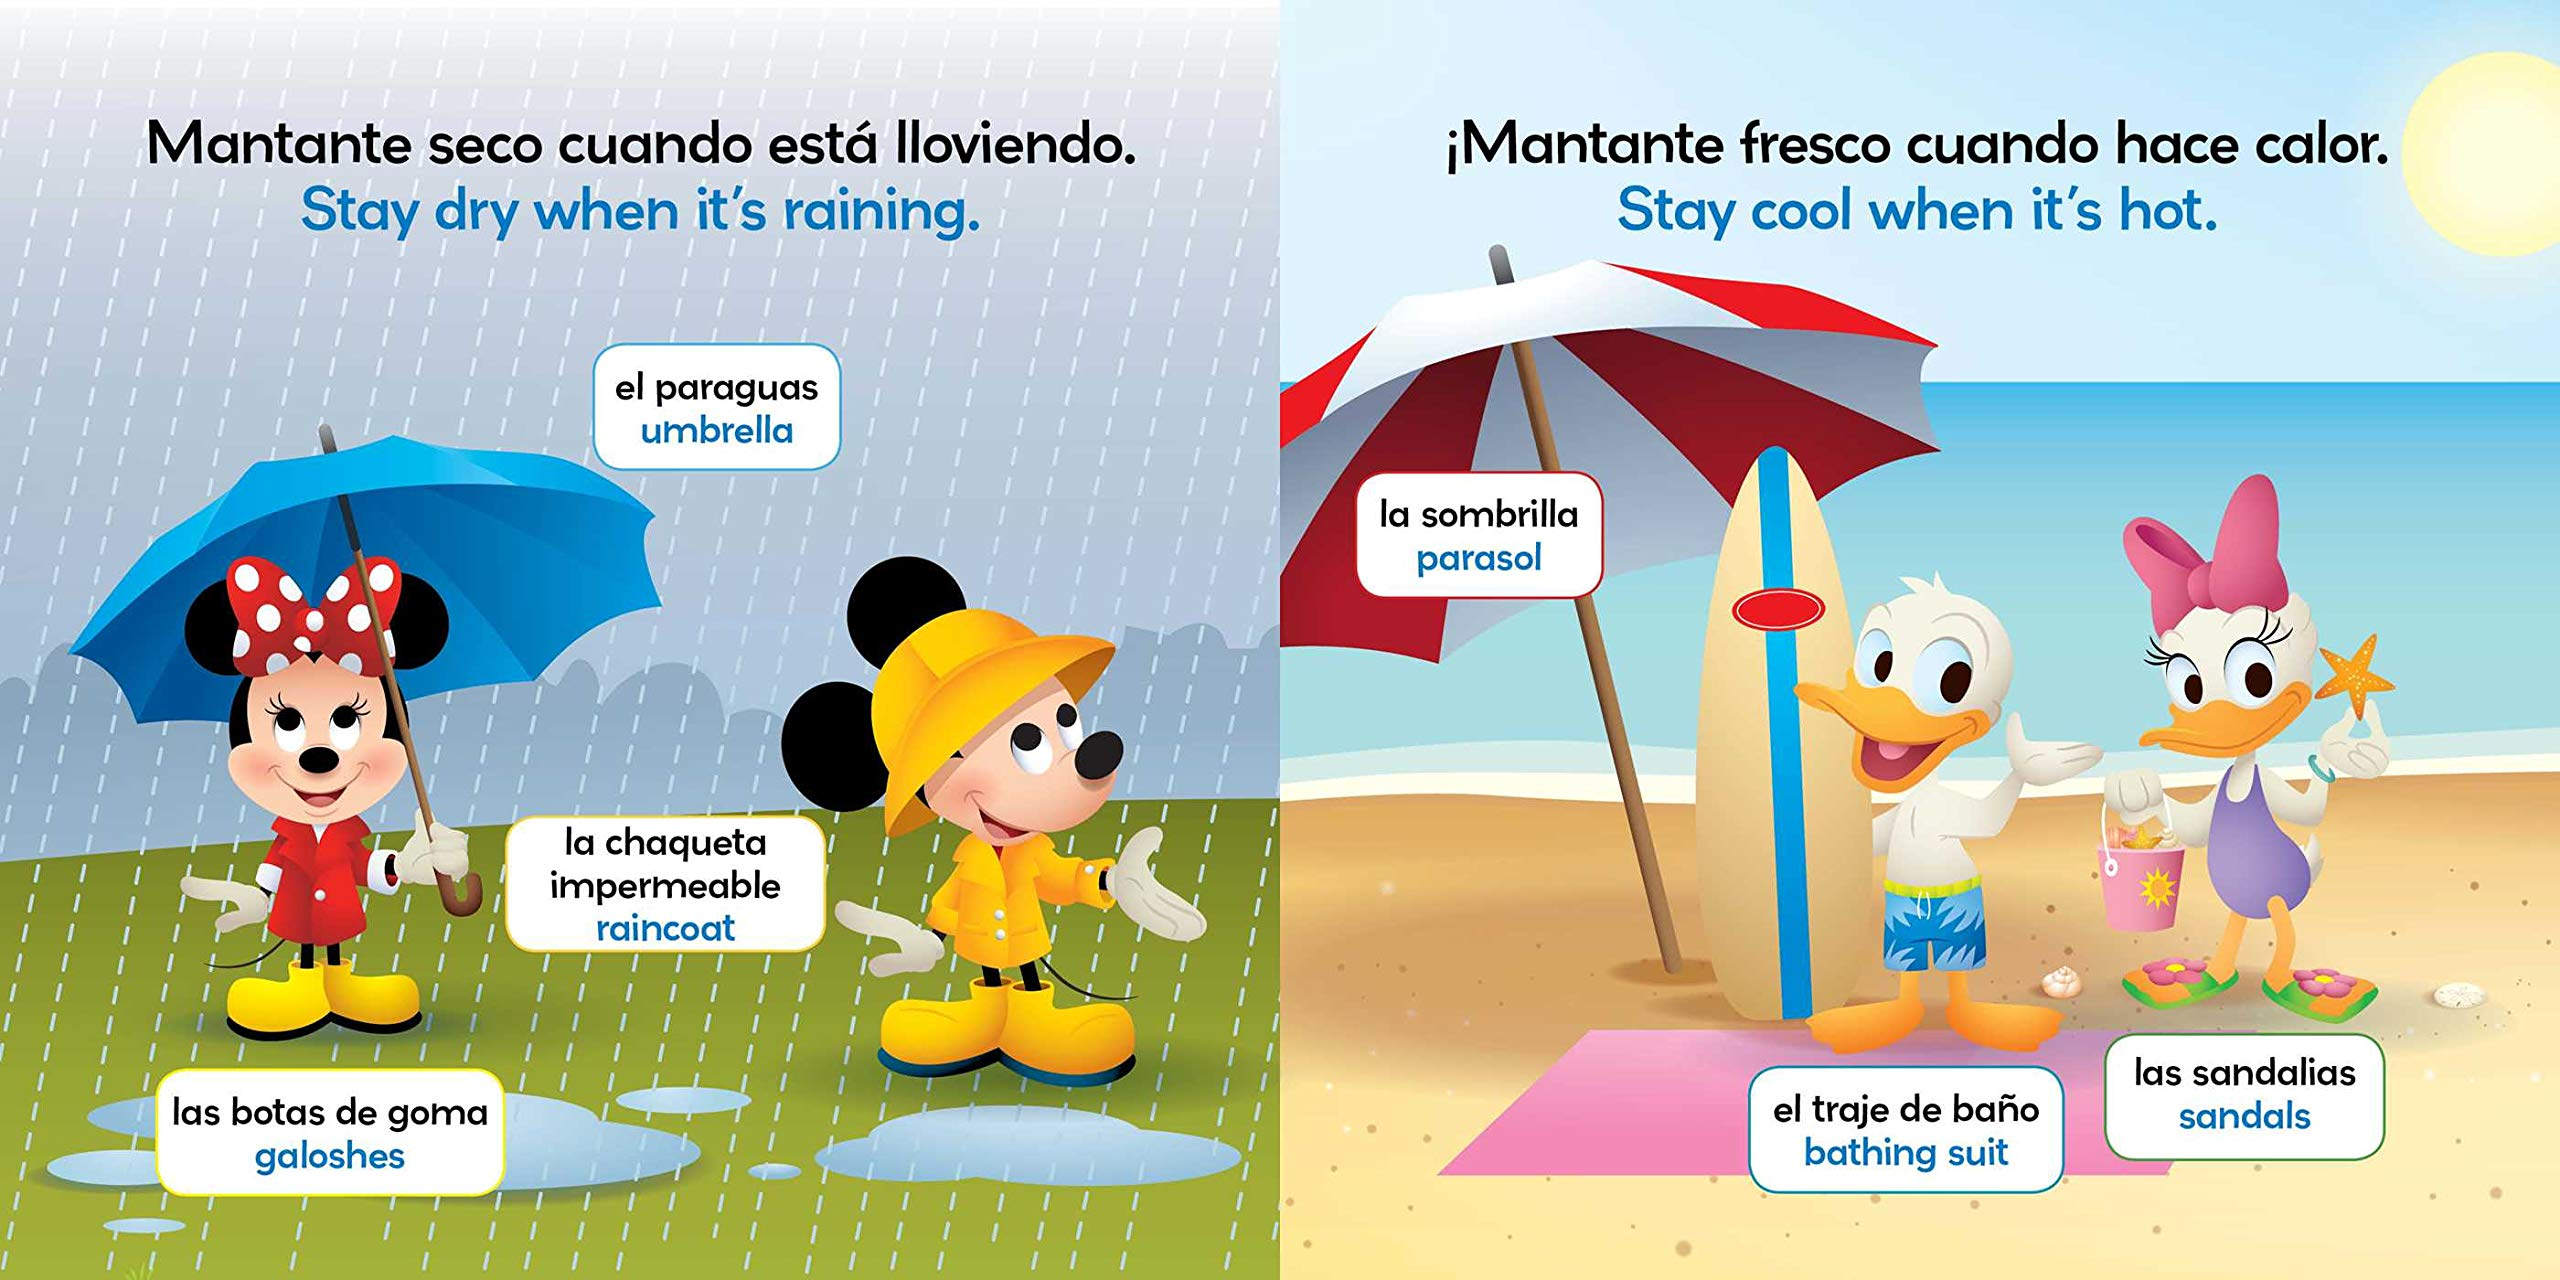 Amazon.com: Rain or Shine / Lluvia o sol (English-Spanish) (Disney Baby) (Disney Bilingual) (9781499807936): Stevie Stack, Disney Storybook Art Team, ...